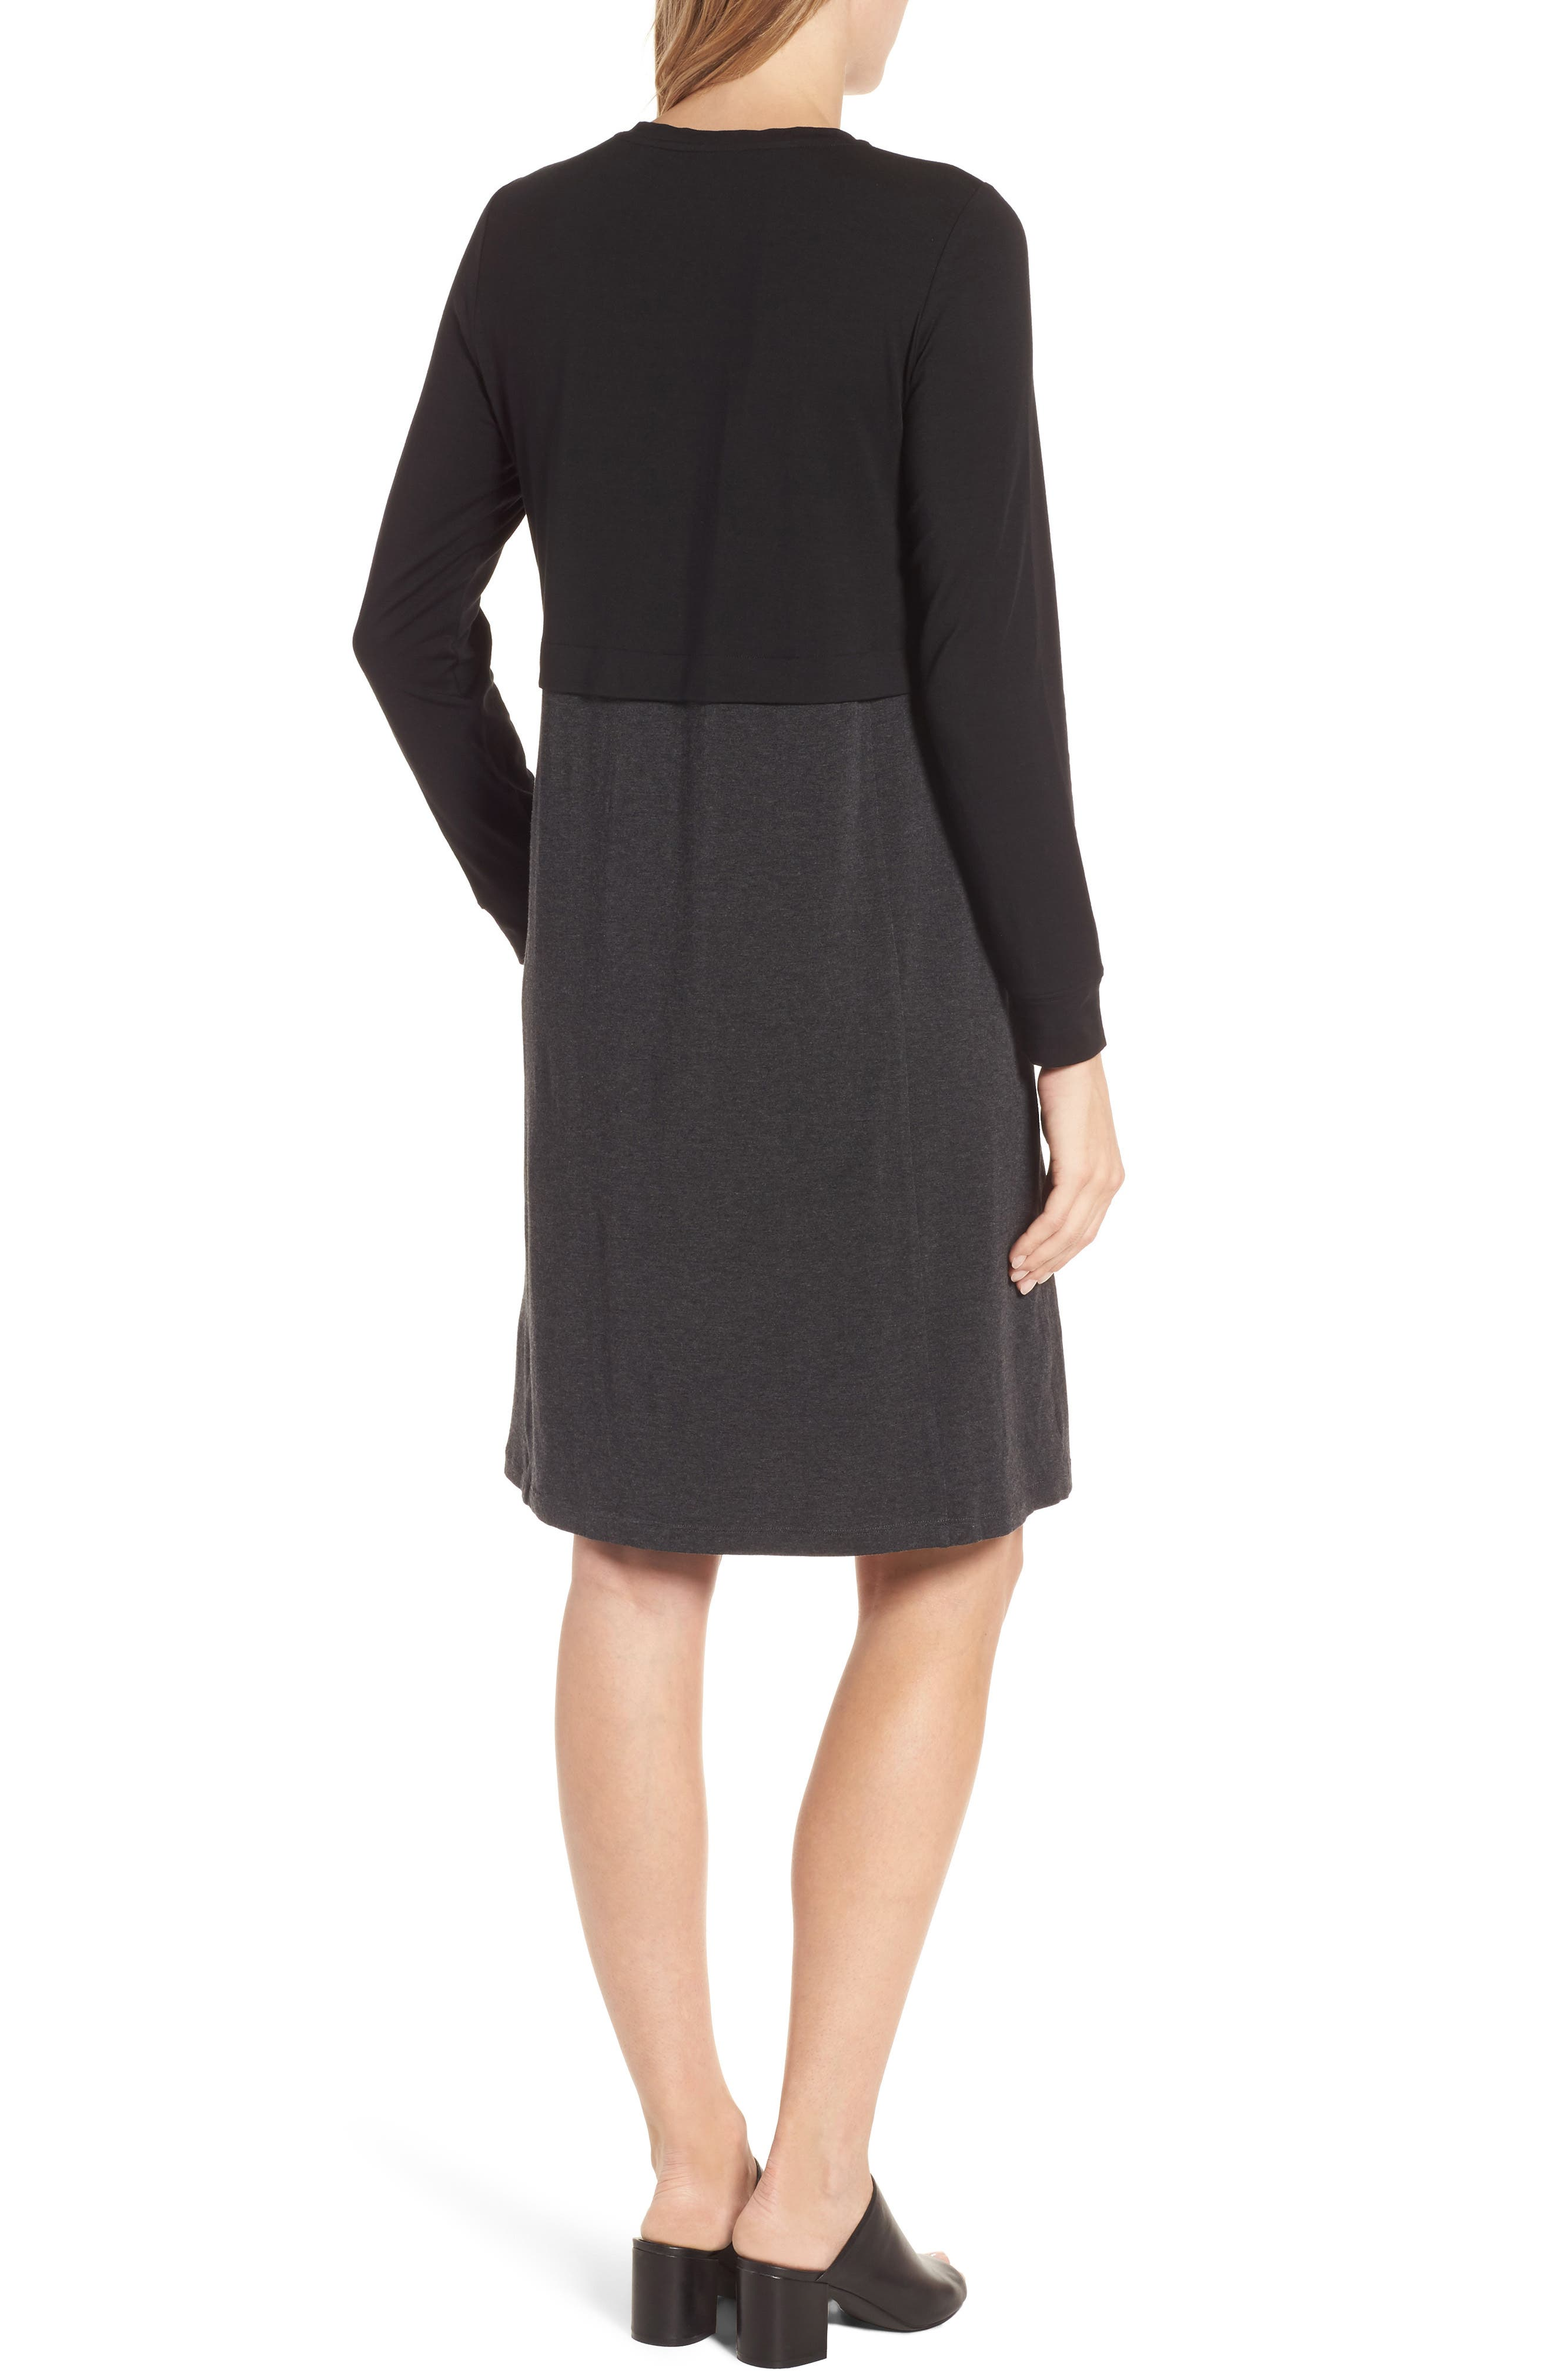 EILEEN FISHER,                             Stretch Tencel<sup>®</sup> A-Line Dress,                             Alternate thumbnail 2, color,                             010